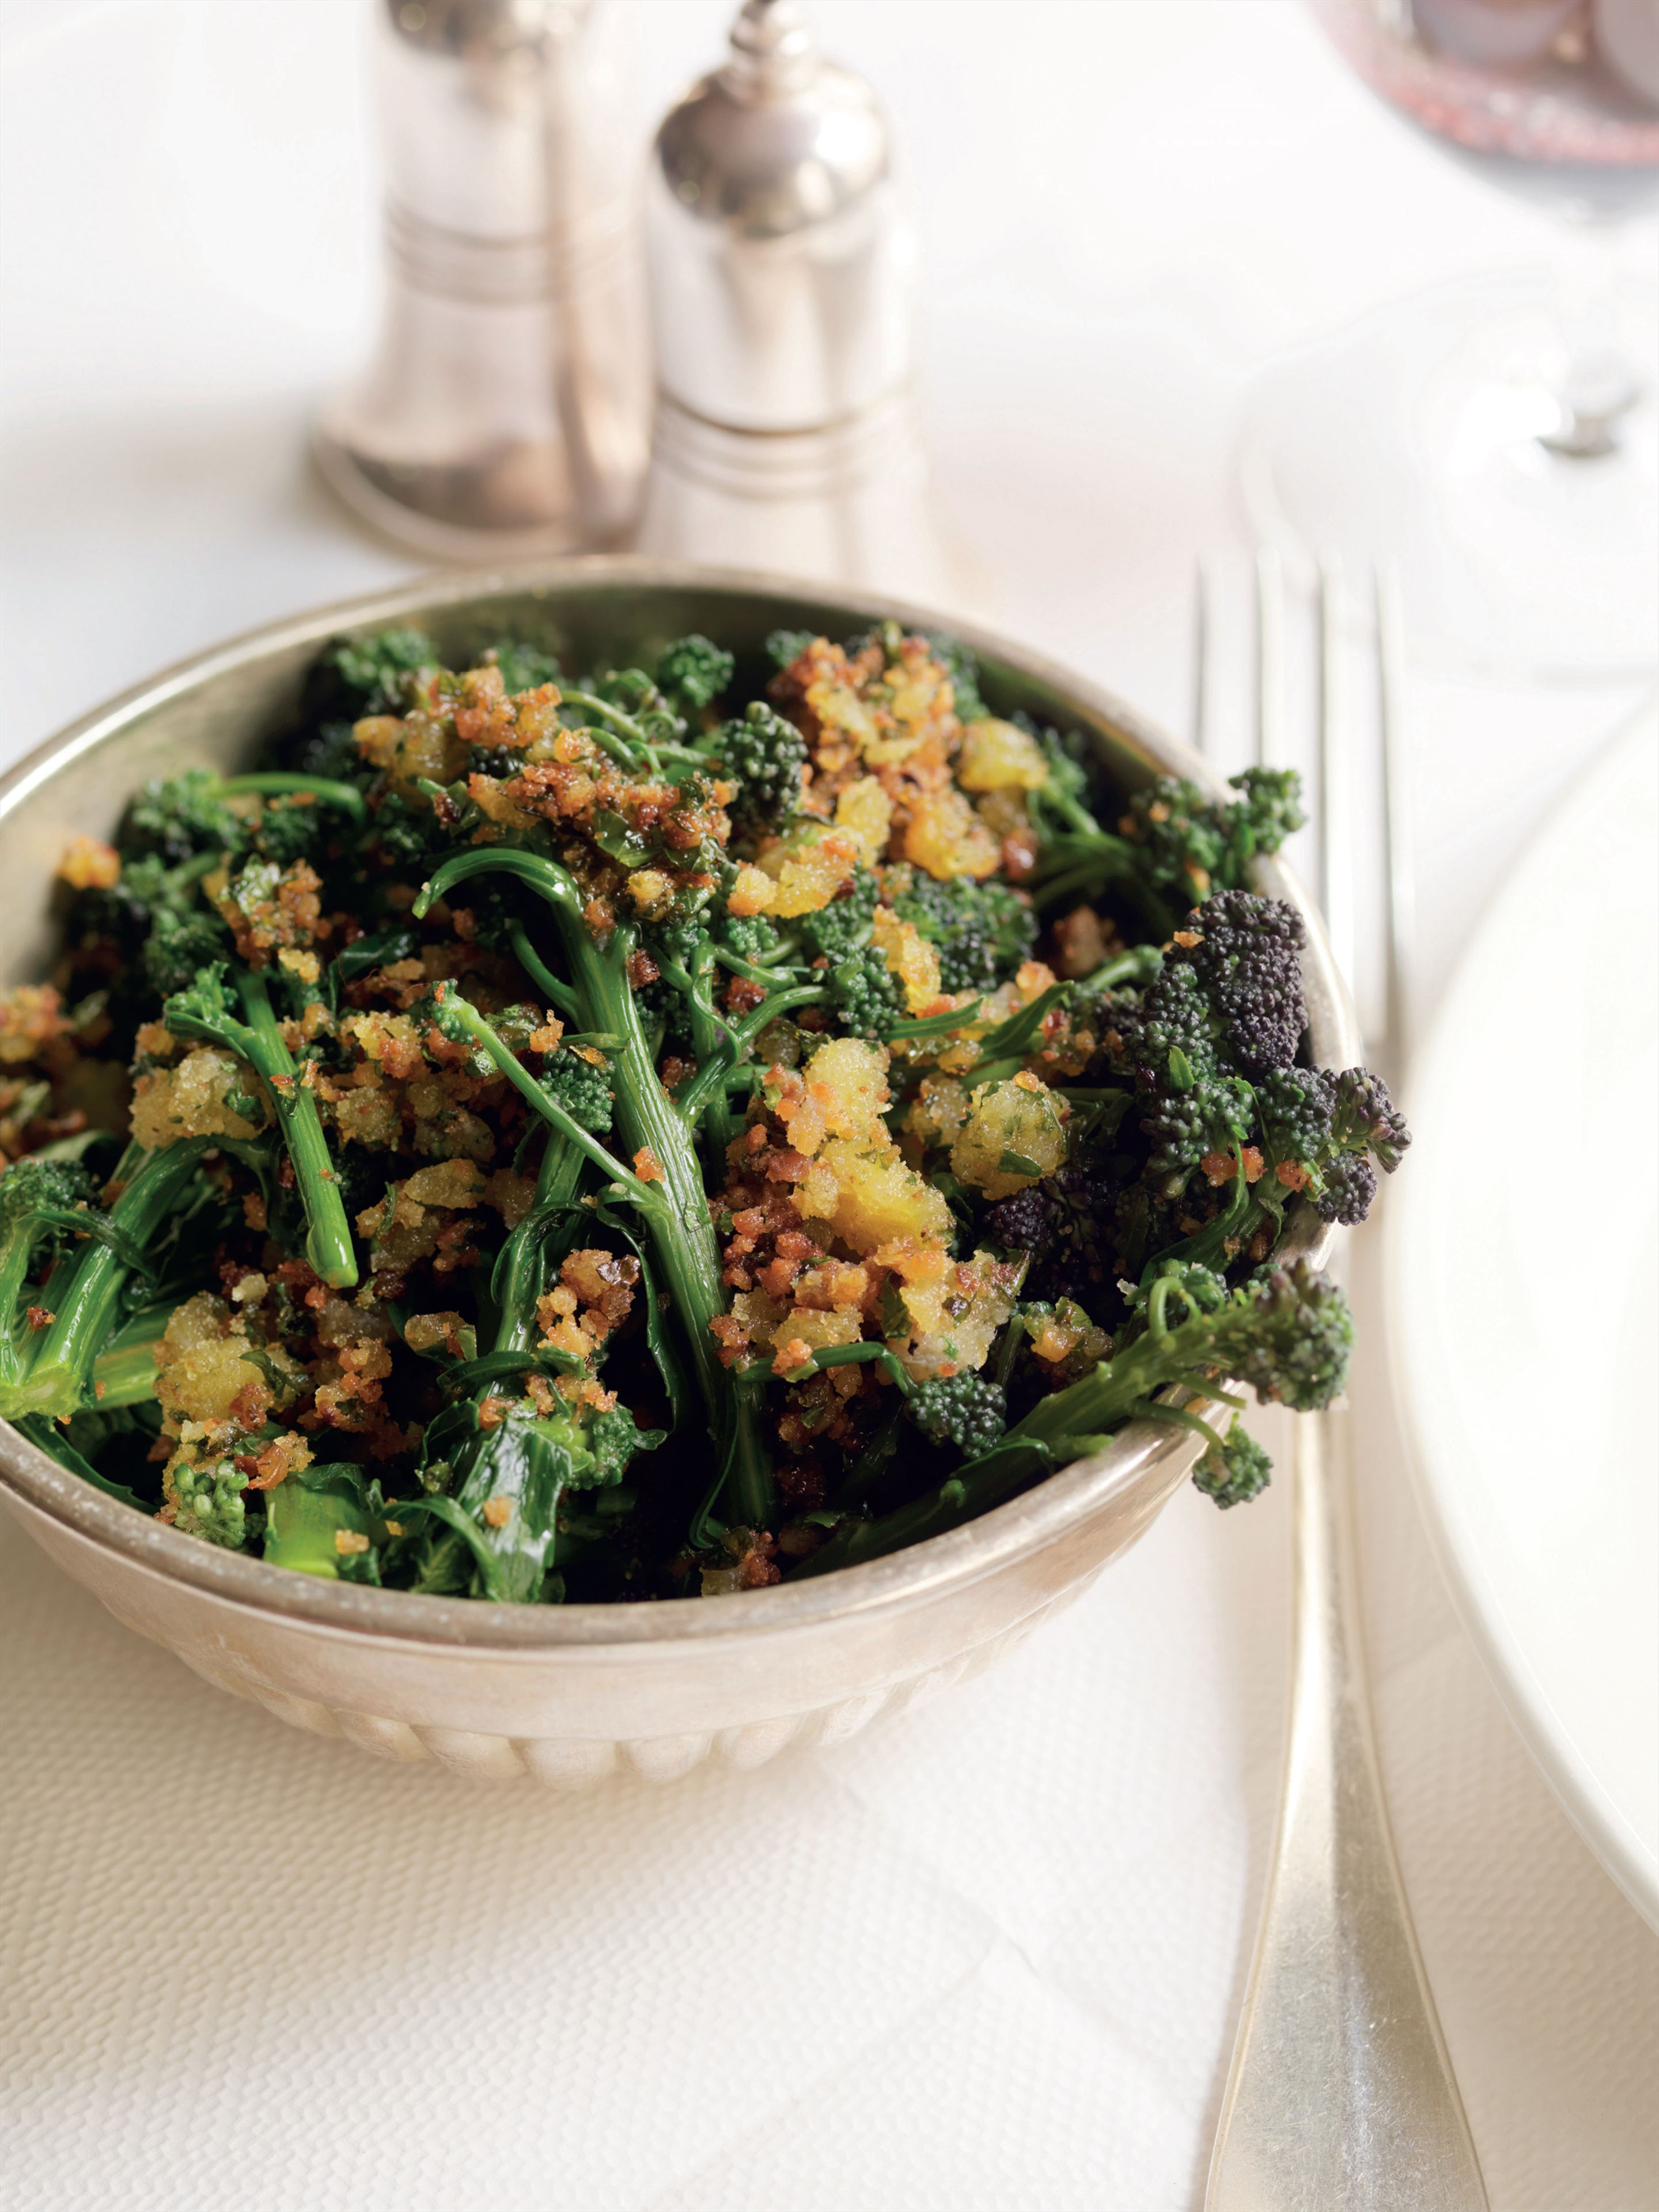 Sprouting broccoli with herbs and hazelnuts